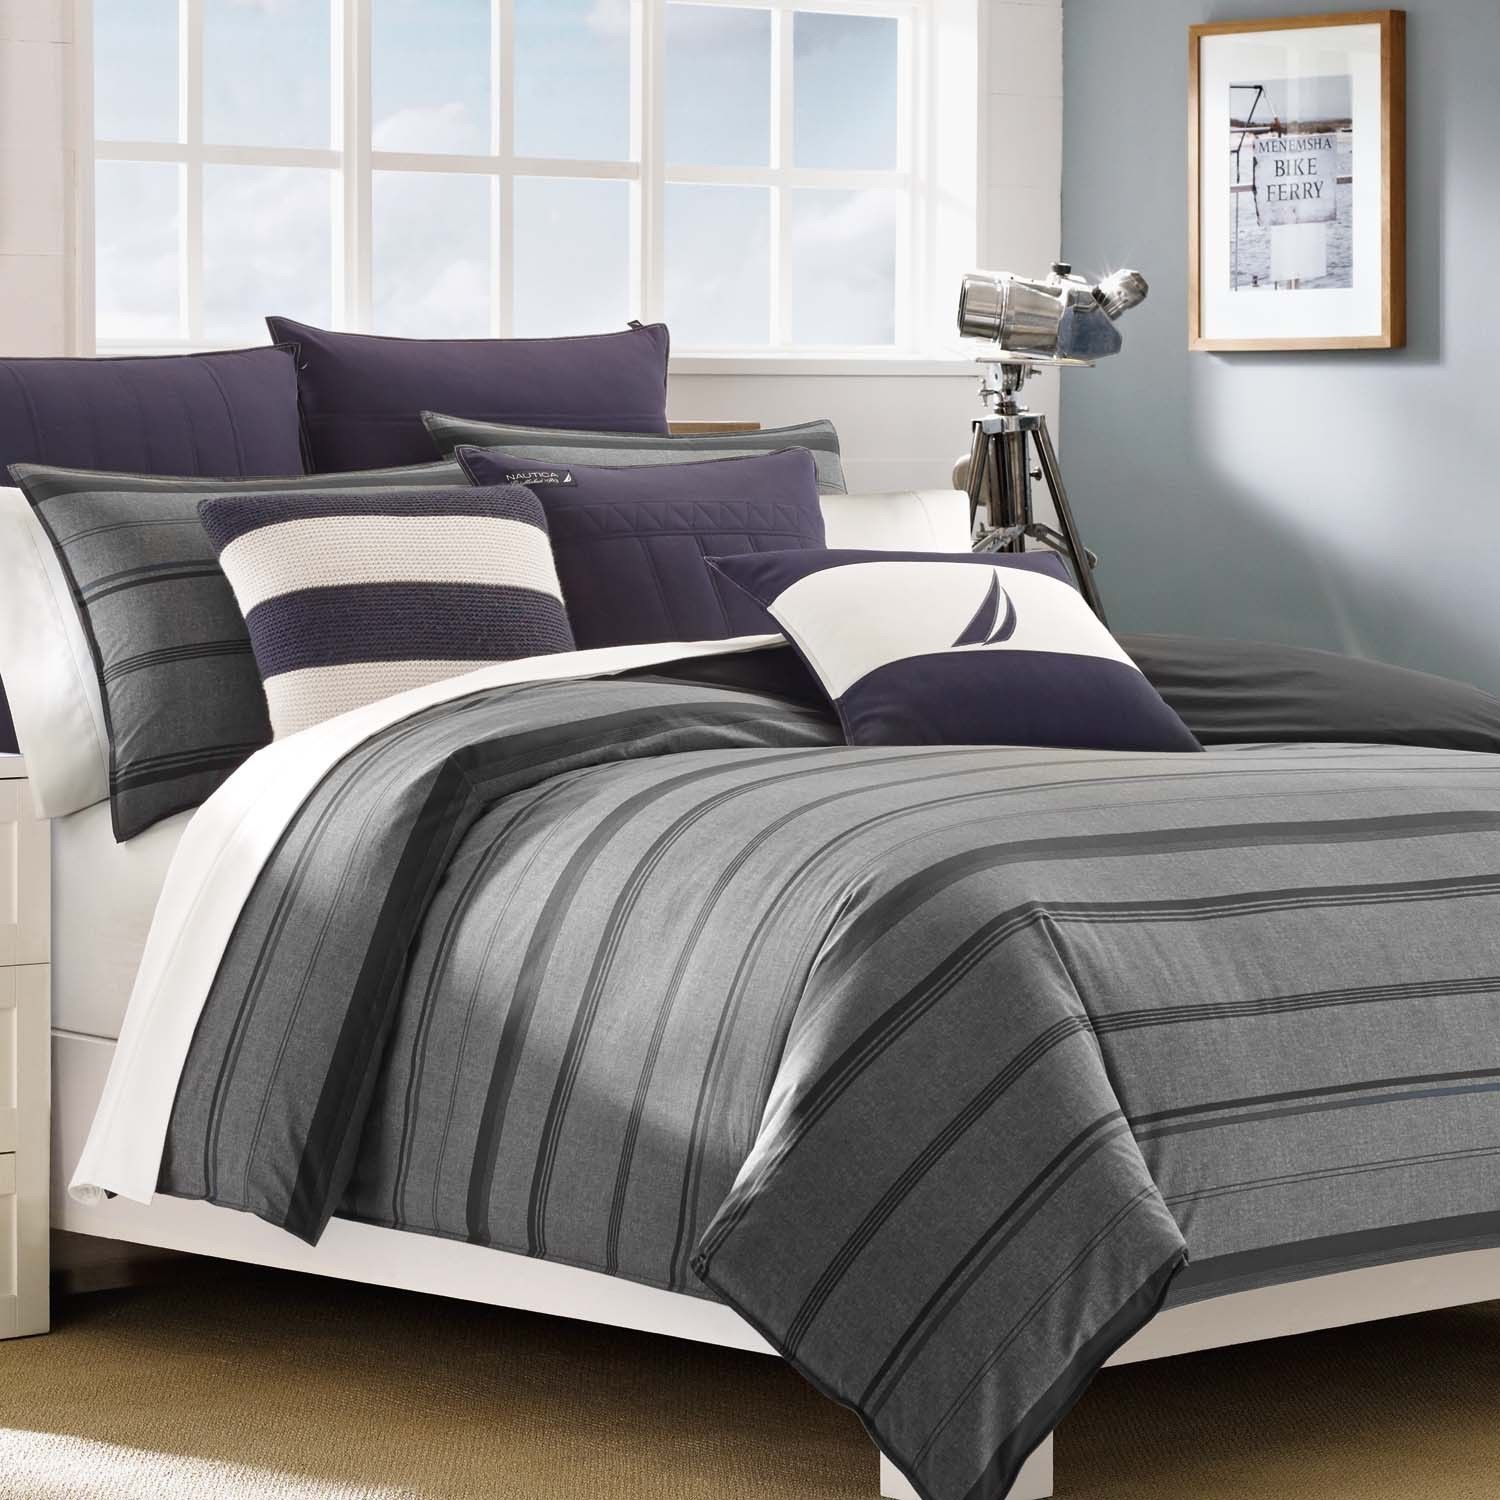 Overstock Bedroom Furniture Sets Nautica Sebec Grey Stripe 3 Piece Cotton Duvet Cover Set By